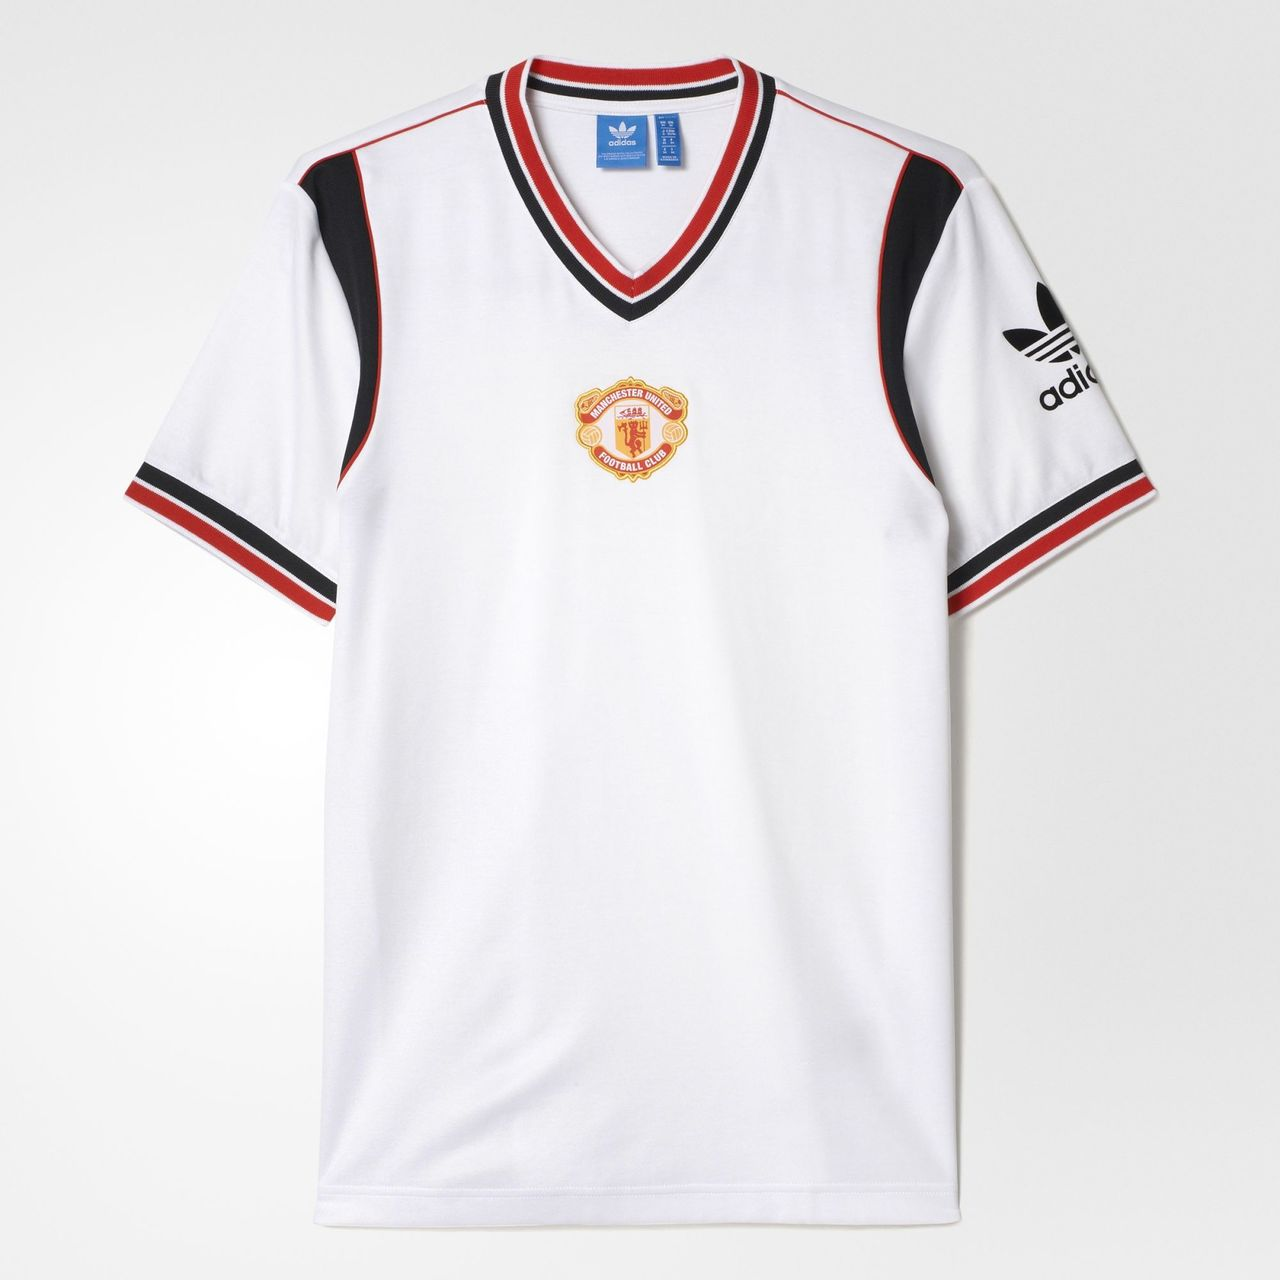 01a83c7b4 Click to enlarge image  manchester united fc 1985 adidas originals away jersey a.jpg ...